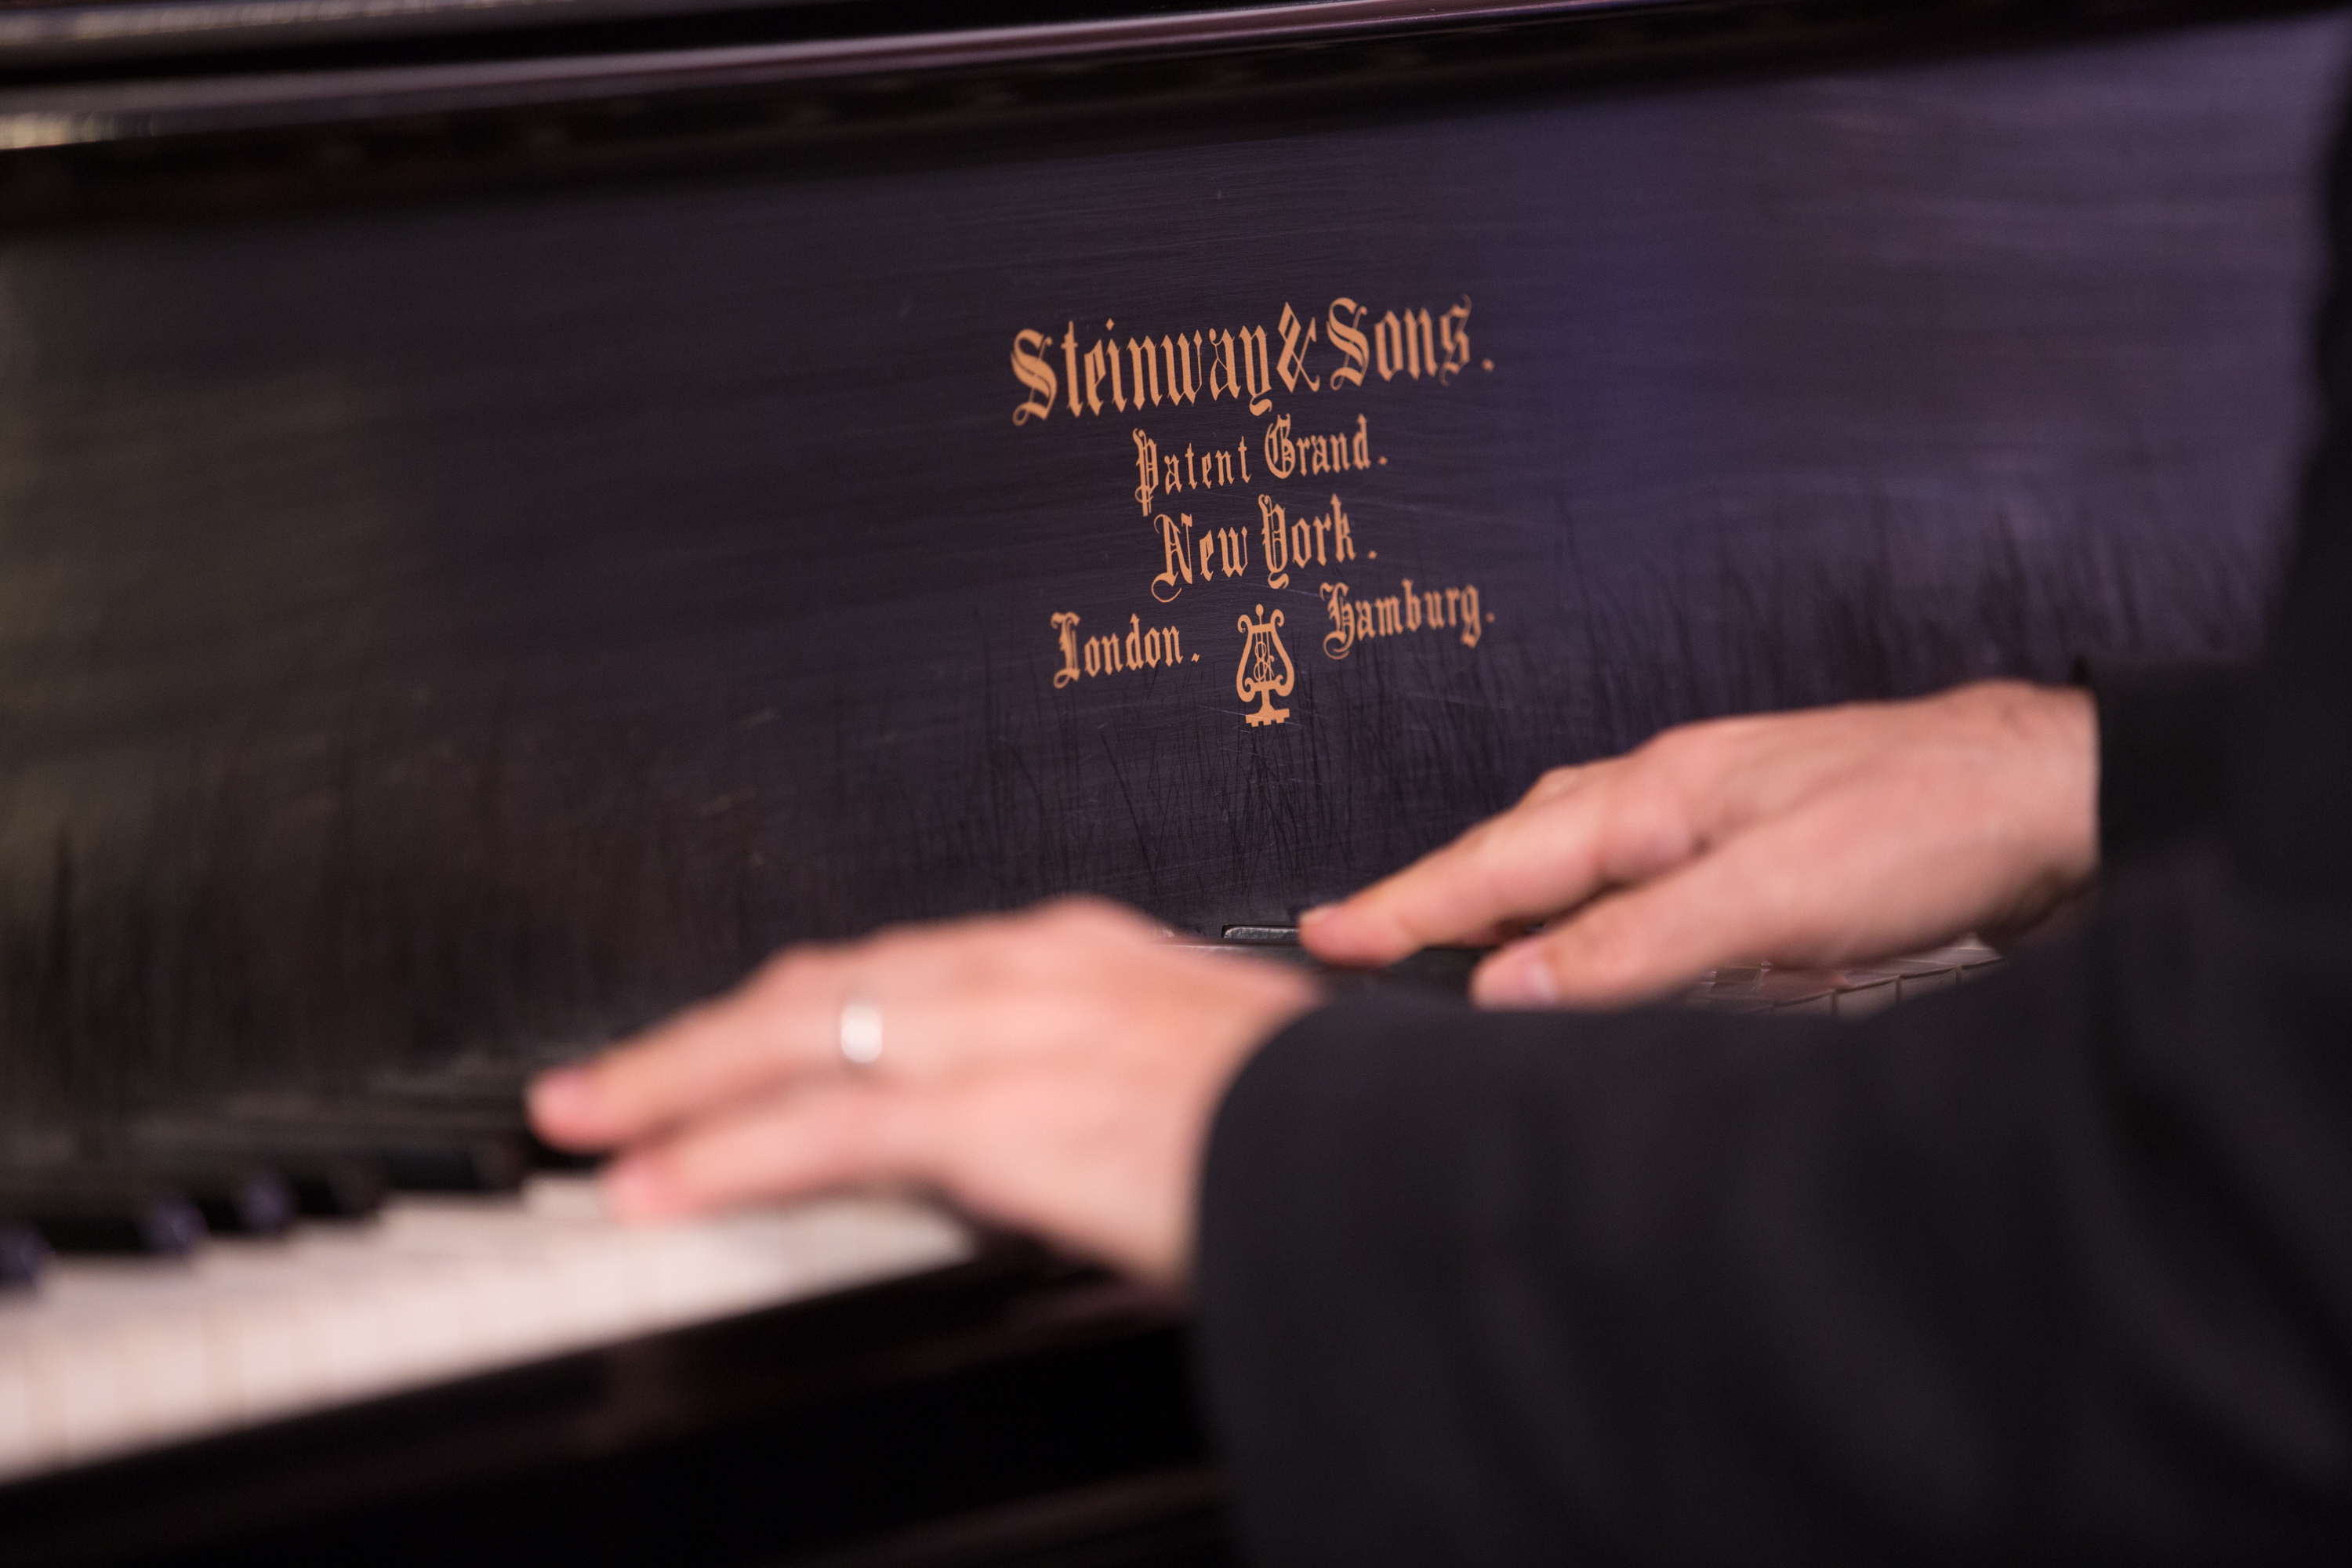 Two light-skinned hands in the middle of playing a black-and-white piano keyboard.